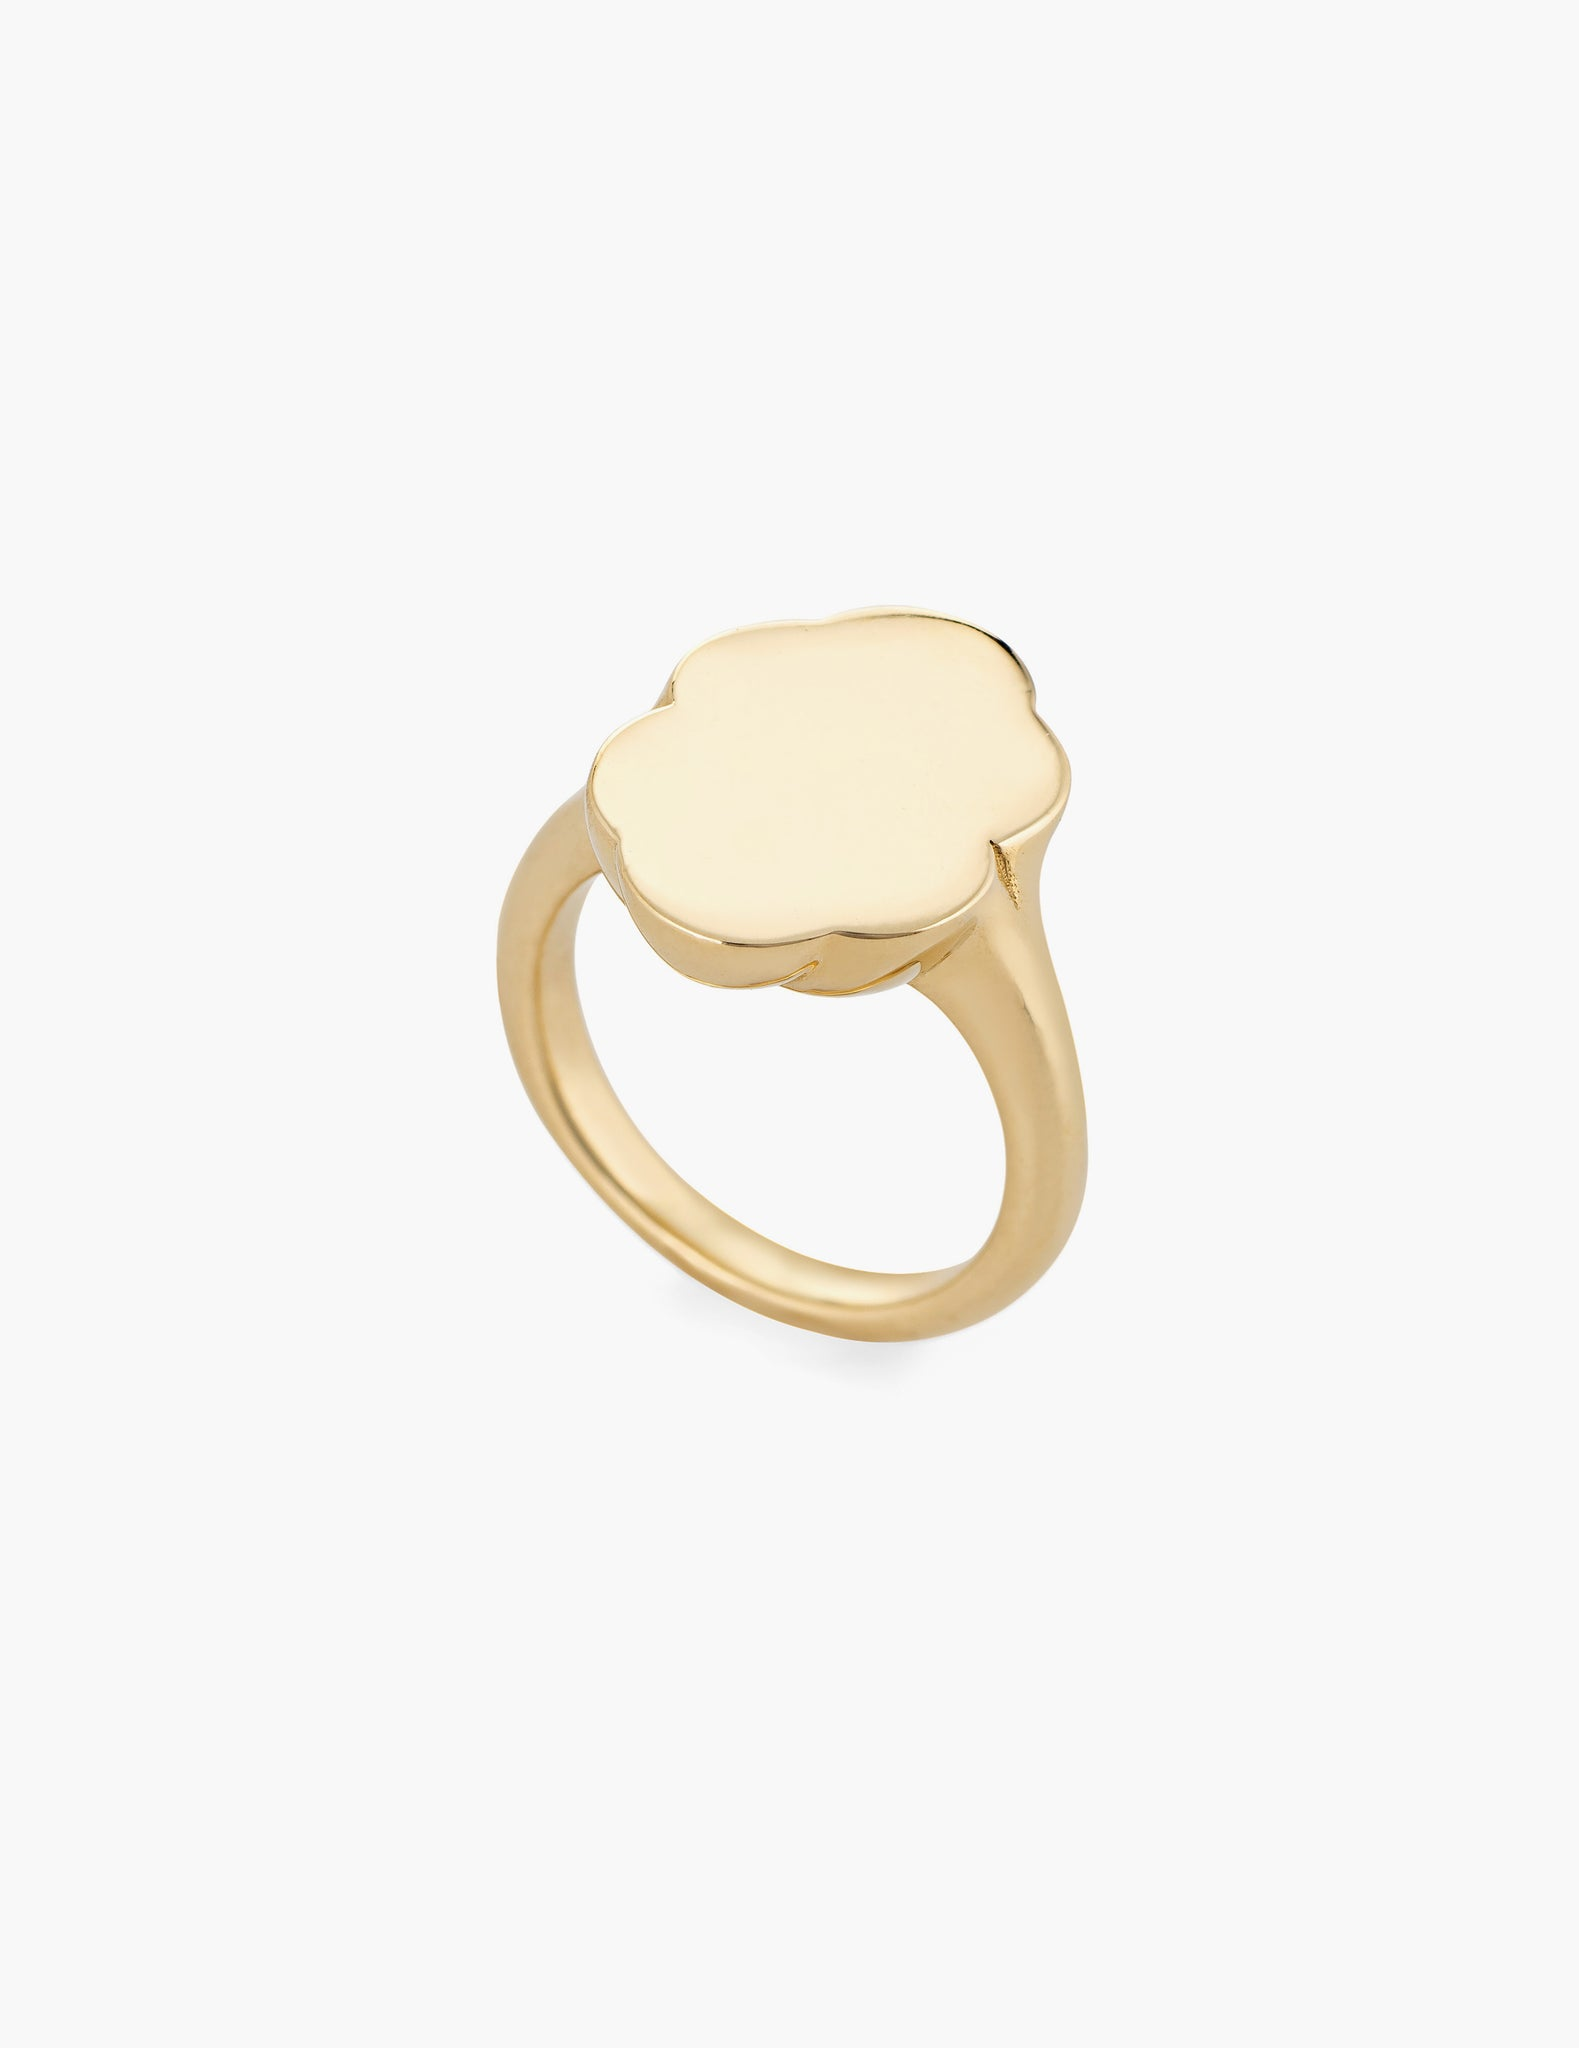 Scallop Signet Ring